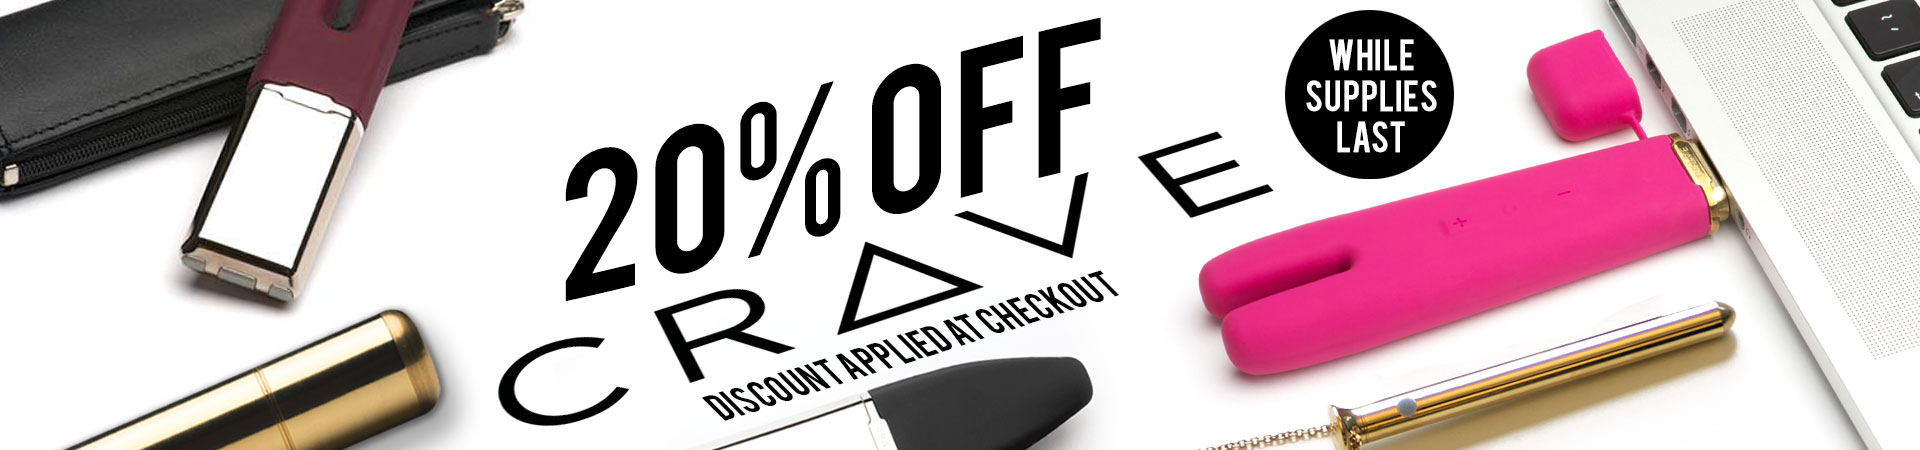 20% off Crave - While Supplies Last!